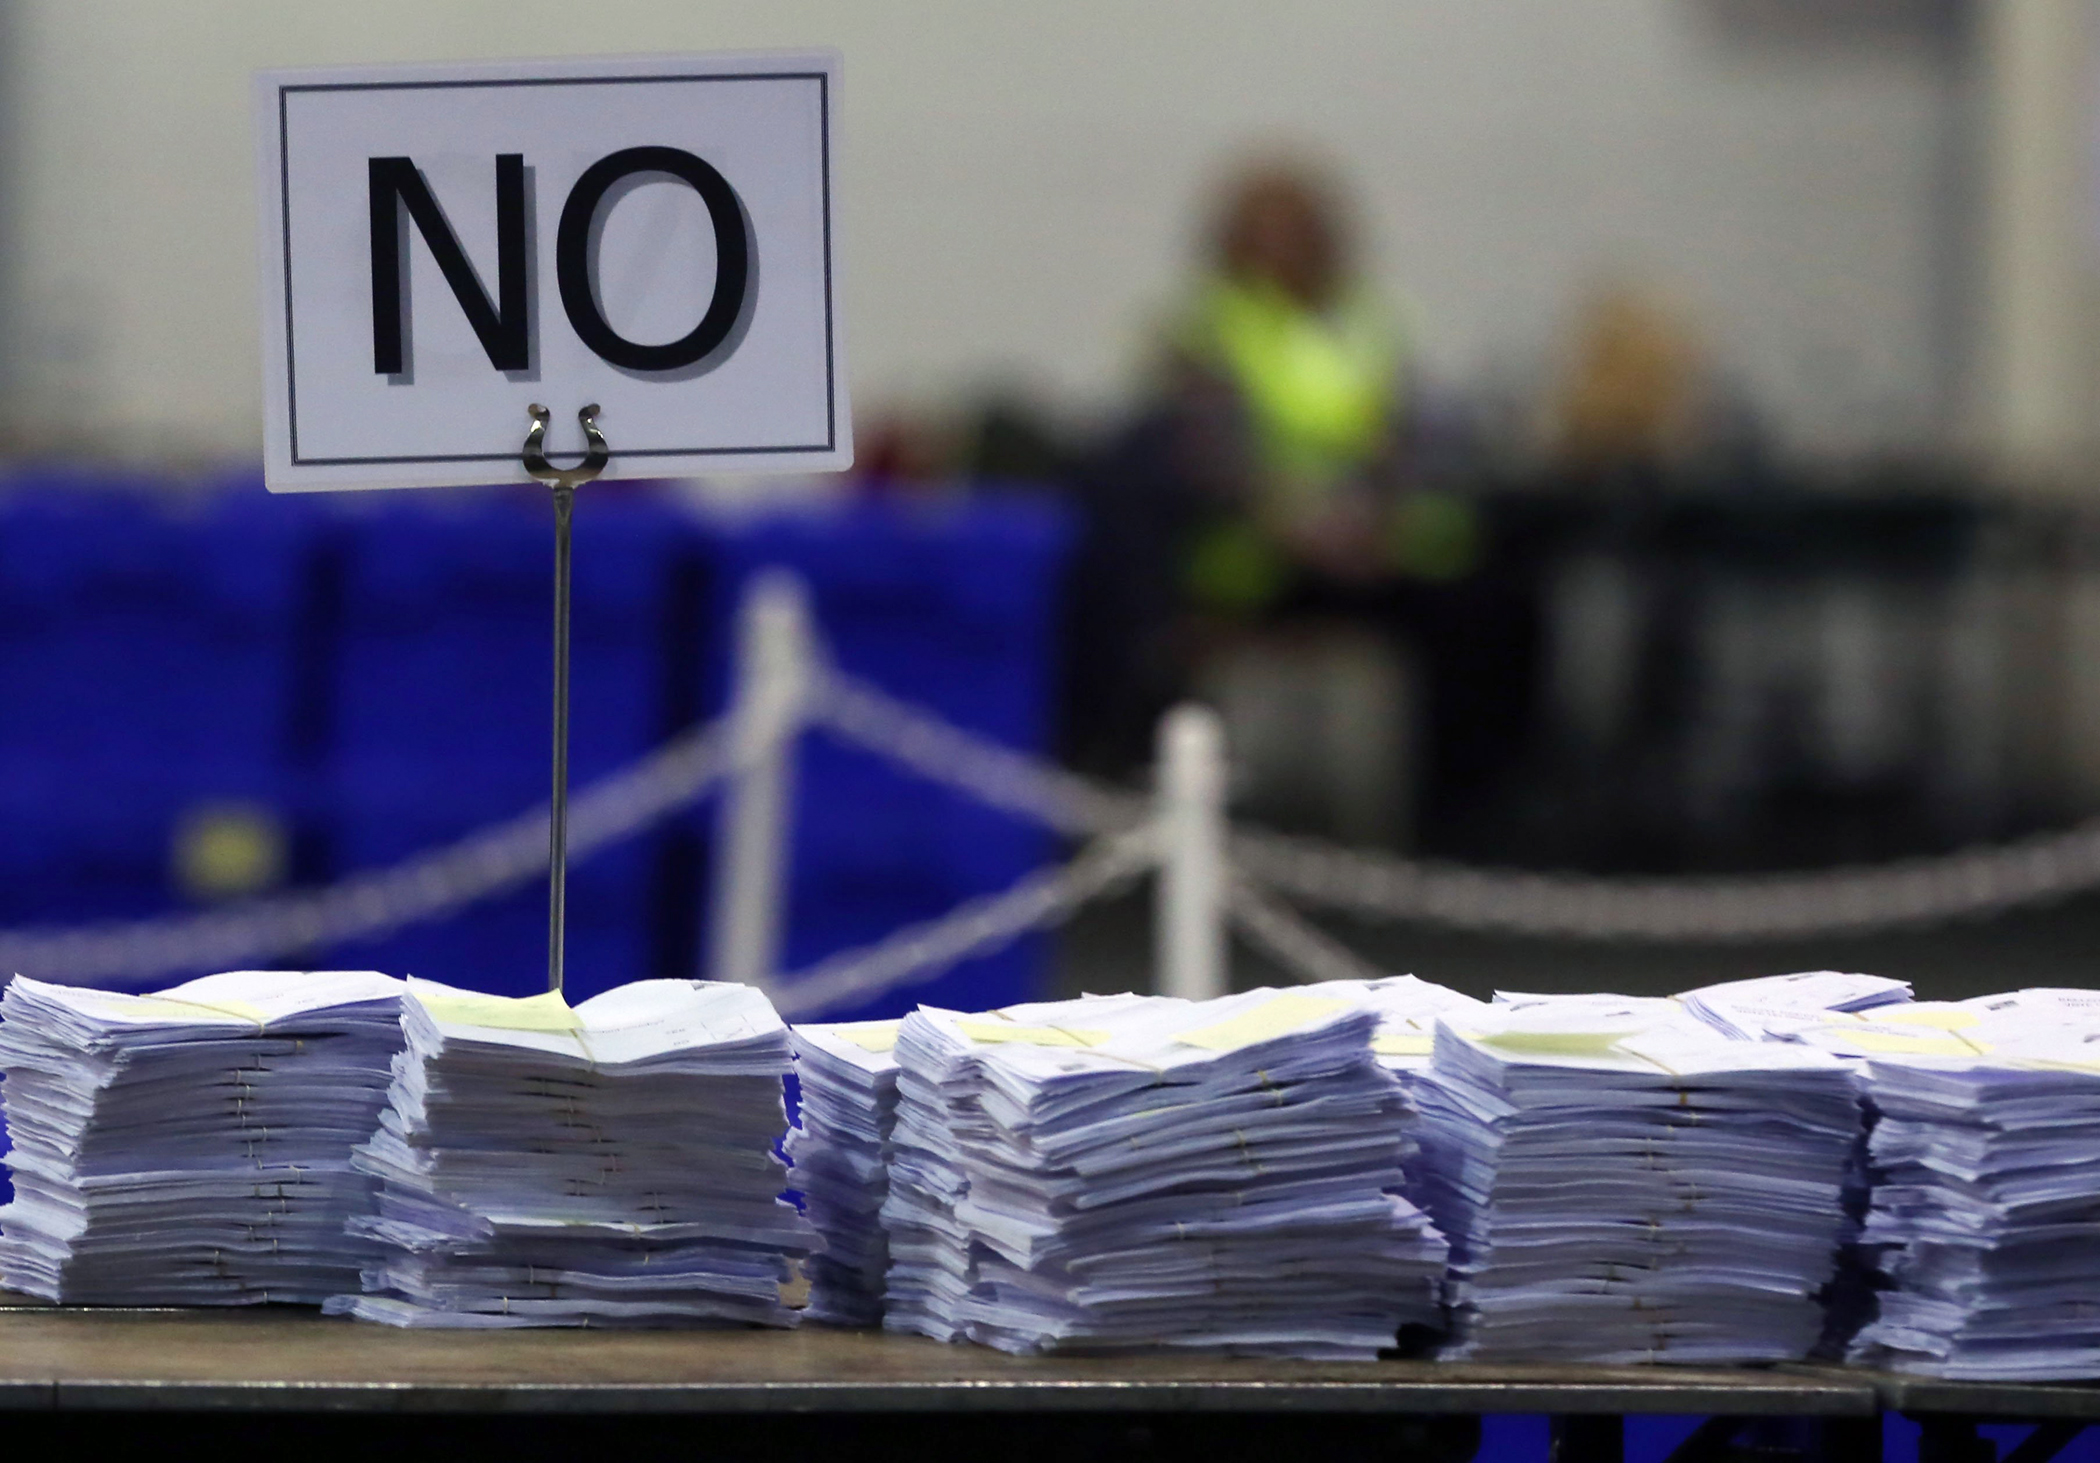 'No' ballots are stacked on a table during the Scottish independence referendum count at the Royal Highland Centre in Edinburgh, Scotland, Sept. 19, 2014.